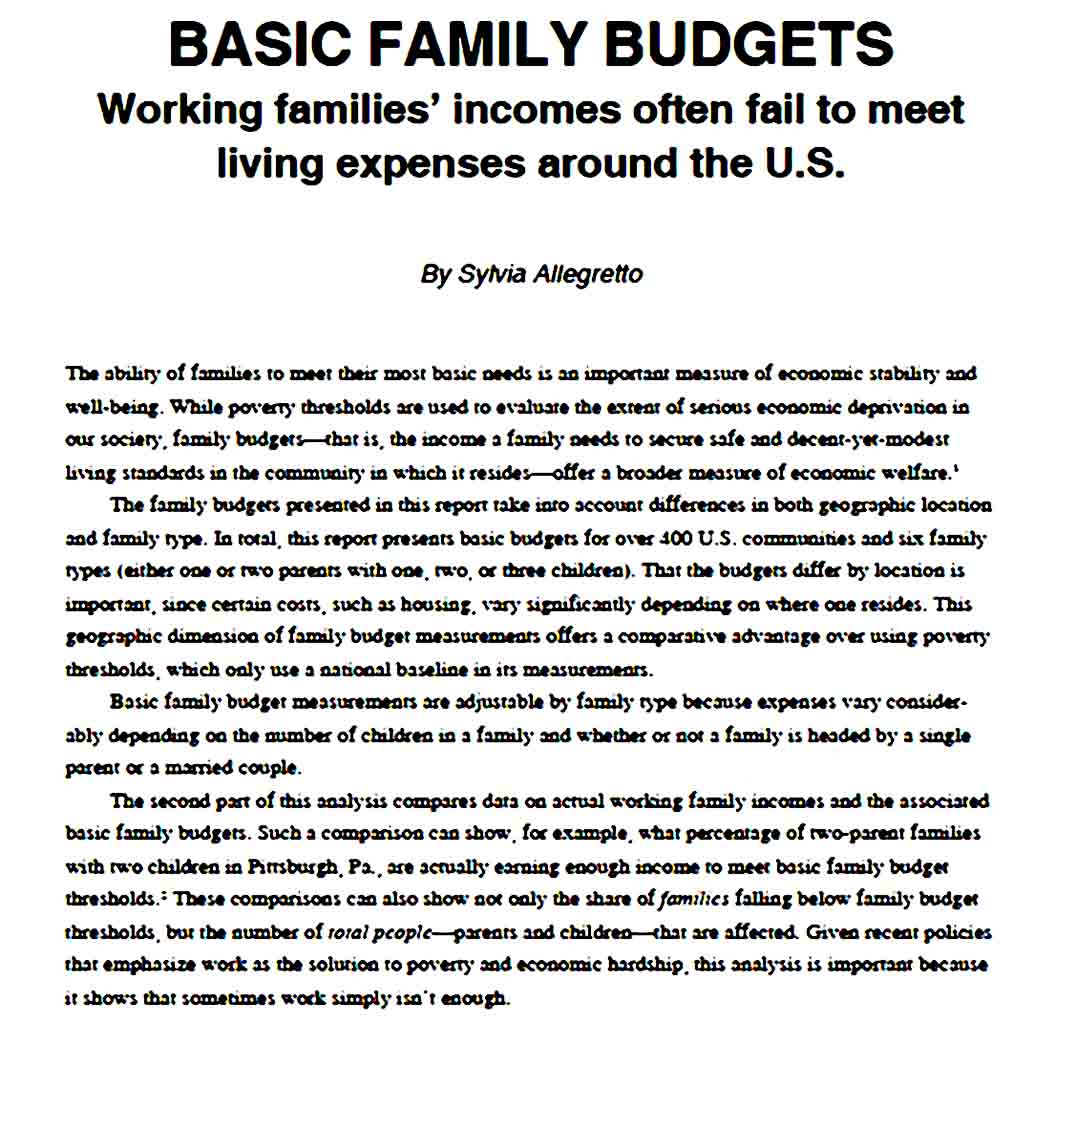 Annual Family Budget